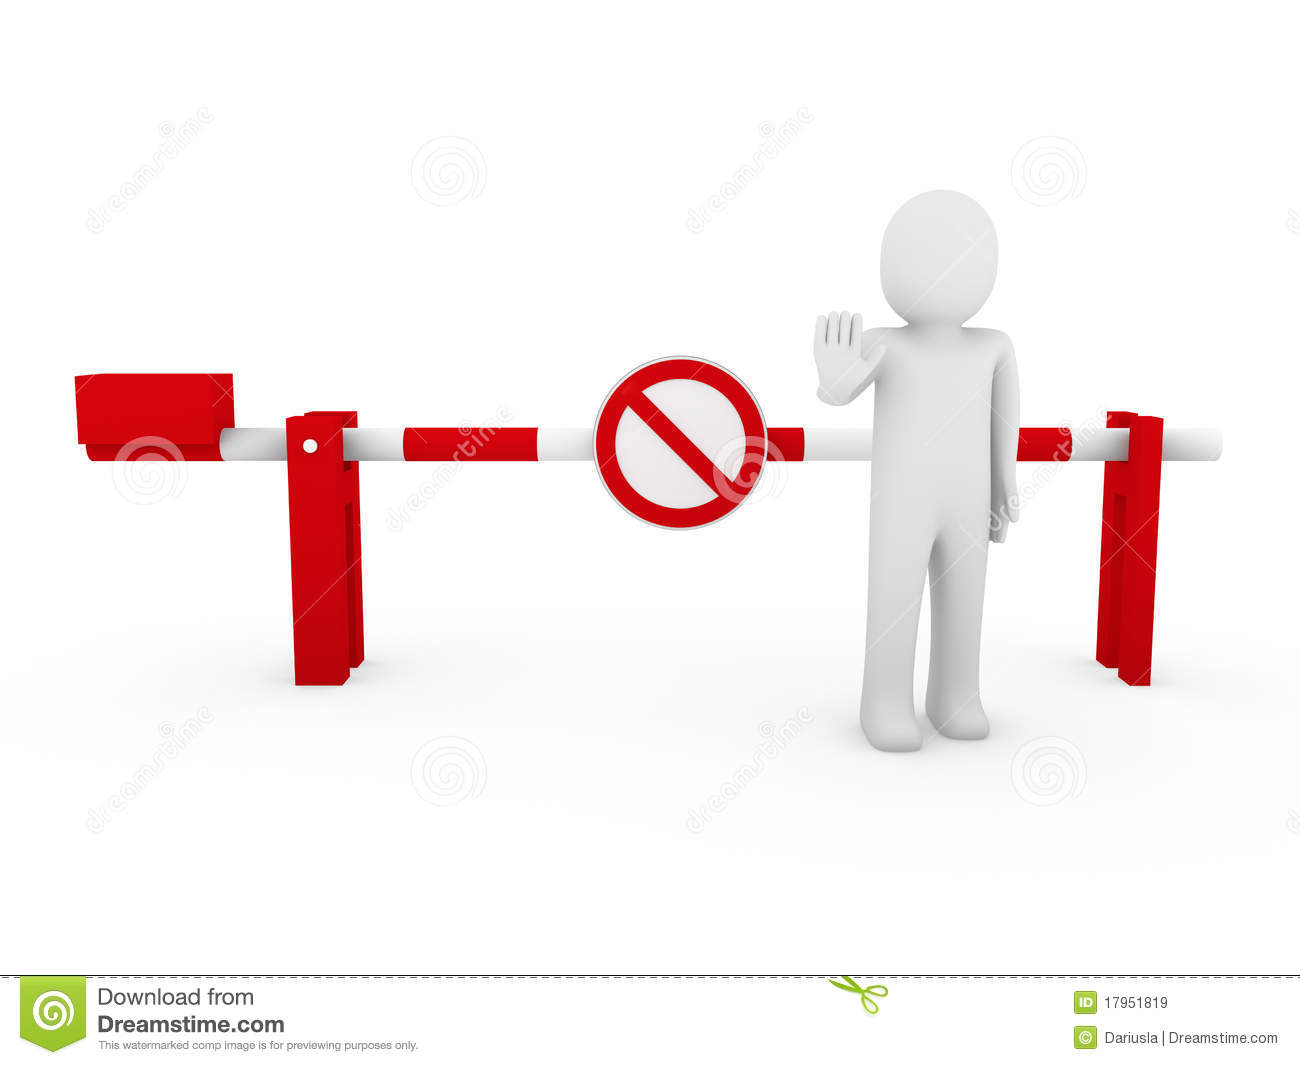 ... Human Stop Barrier Red Ban Royalty Free Stock Images - Image: 17951819: dreamstime.com/royalty-free-stock-images-3d-human-stop-barrier-red...